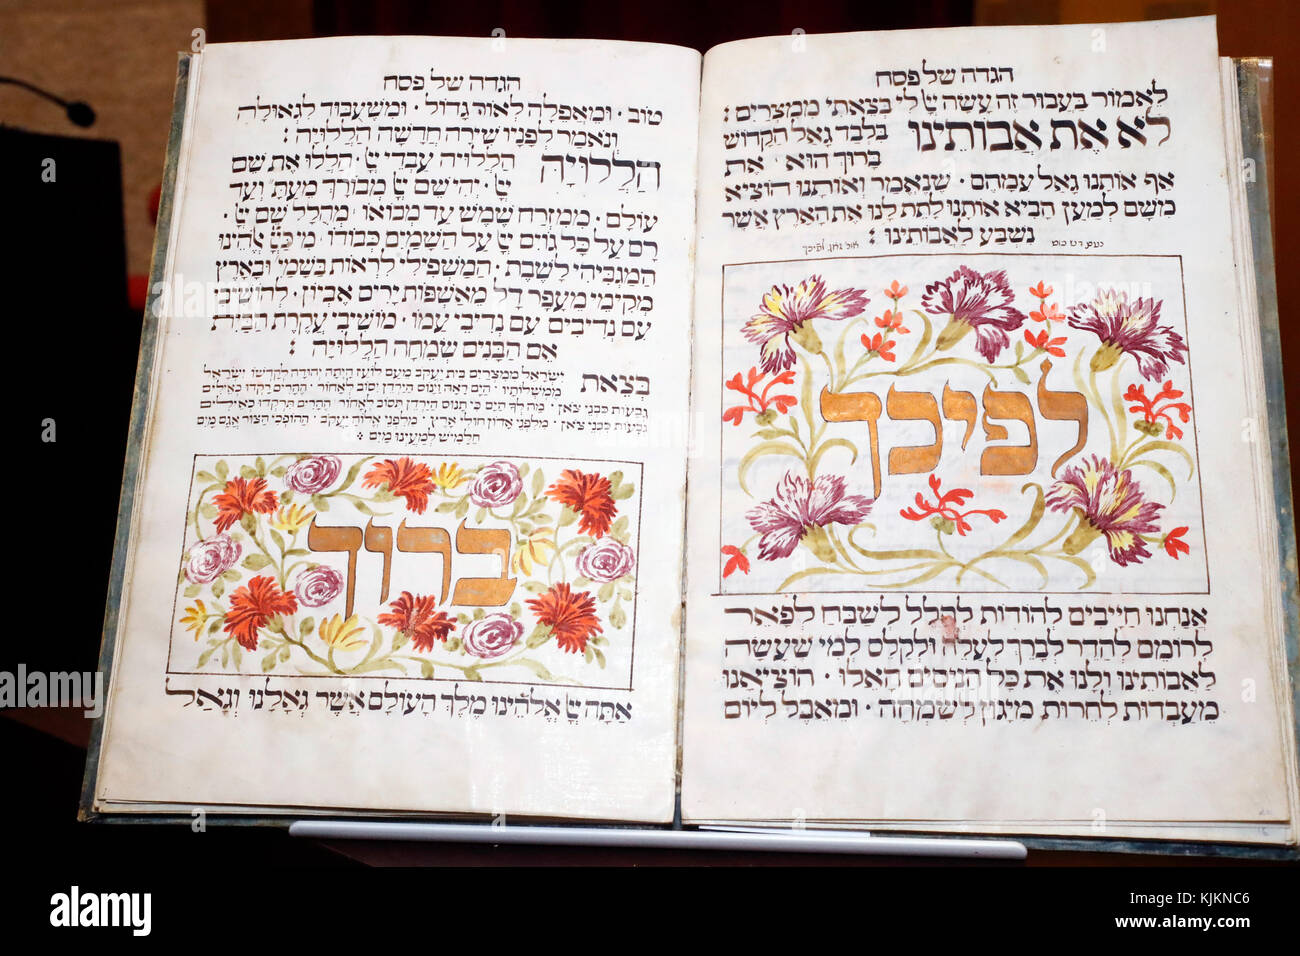 Old illuminated Haggadah (Presburg 1773). A Jewish text that sets forth the order of the Passover Seder. Switzerland. - Stock Image